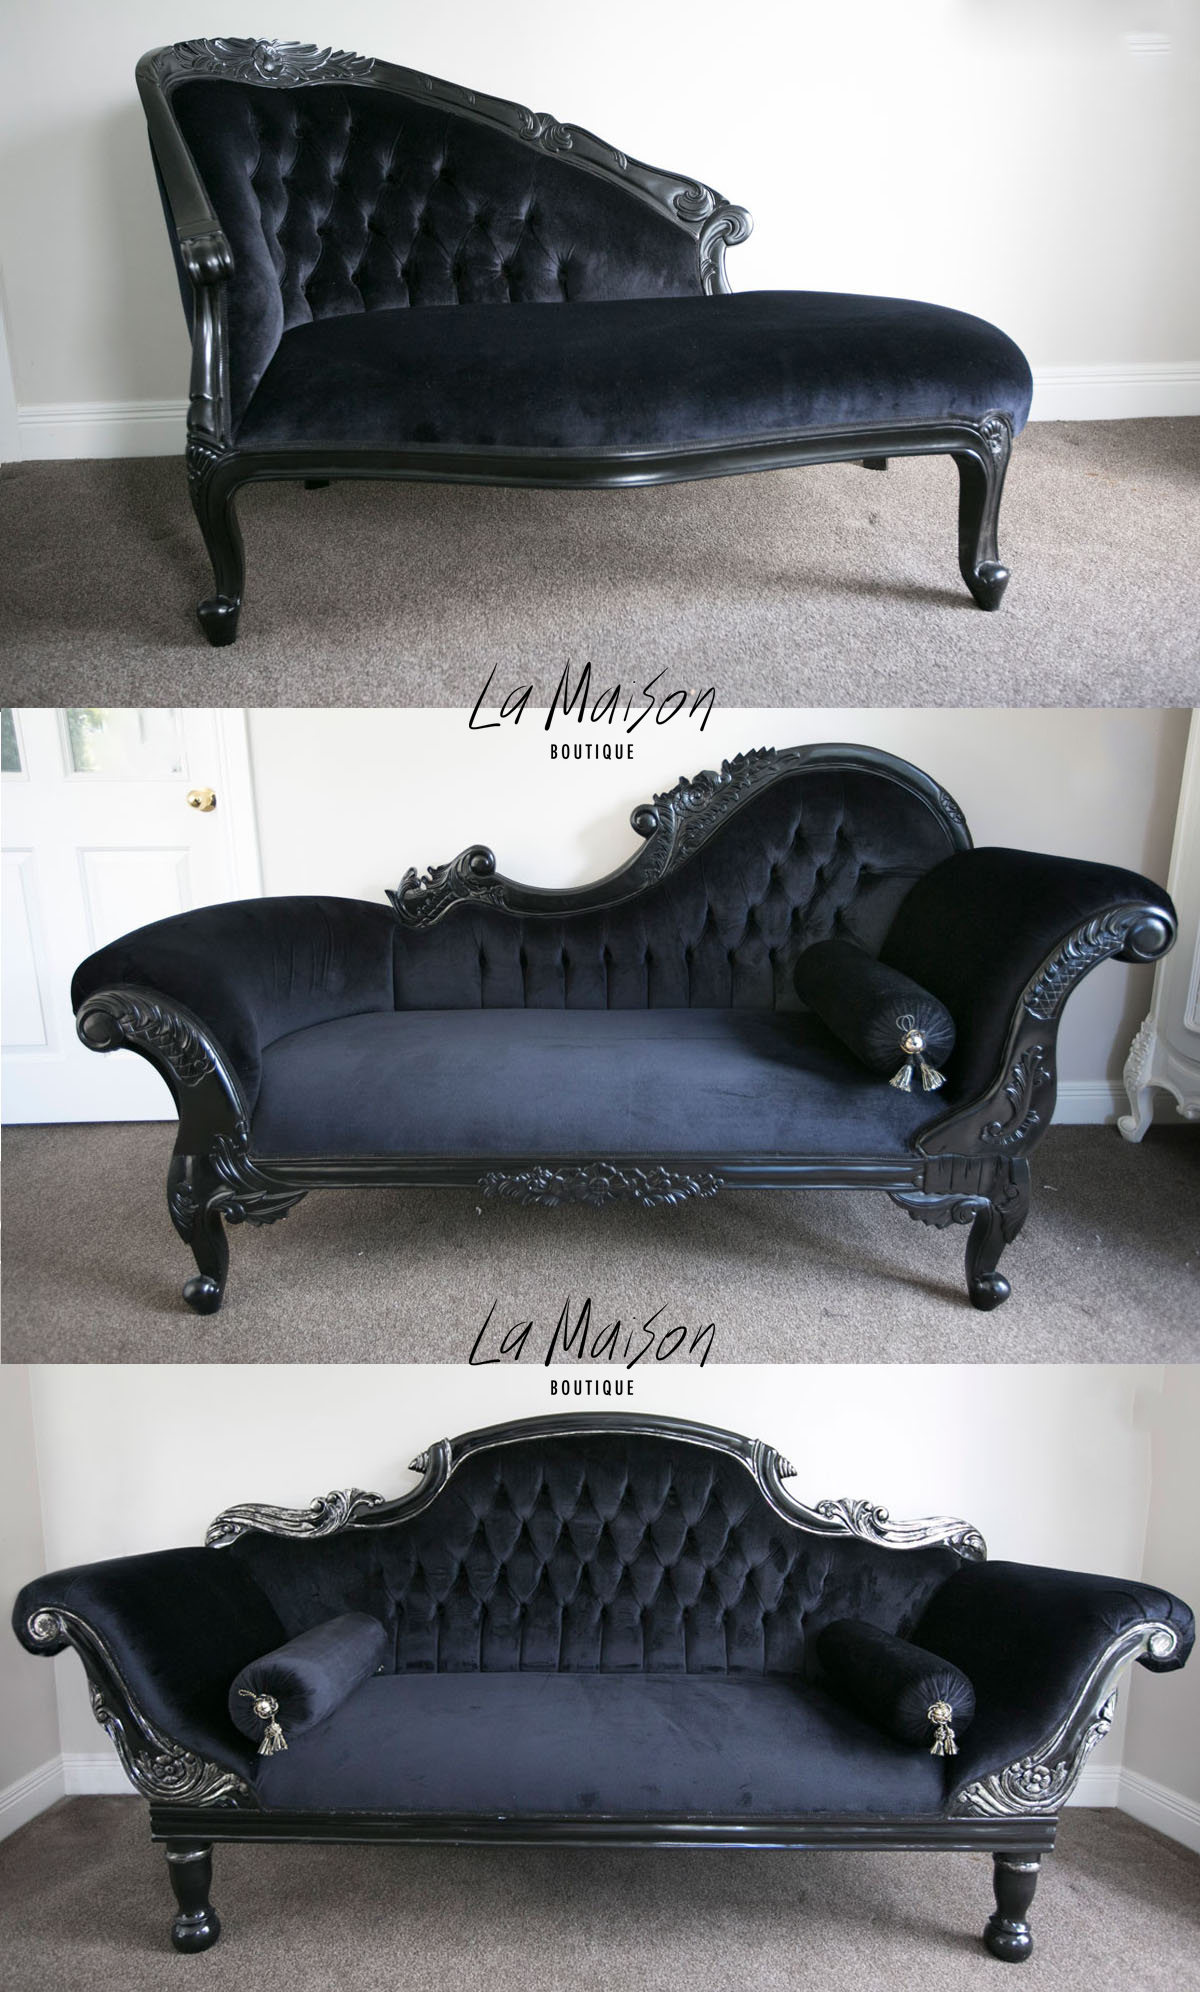 How to style a chaise longue la maison boutique for Black chaise lounge sofa